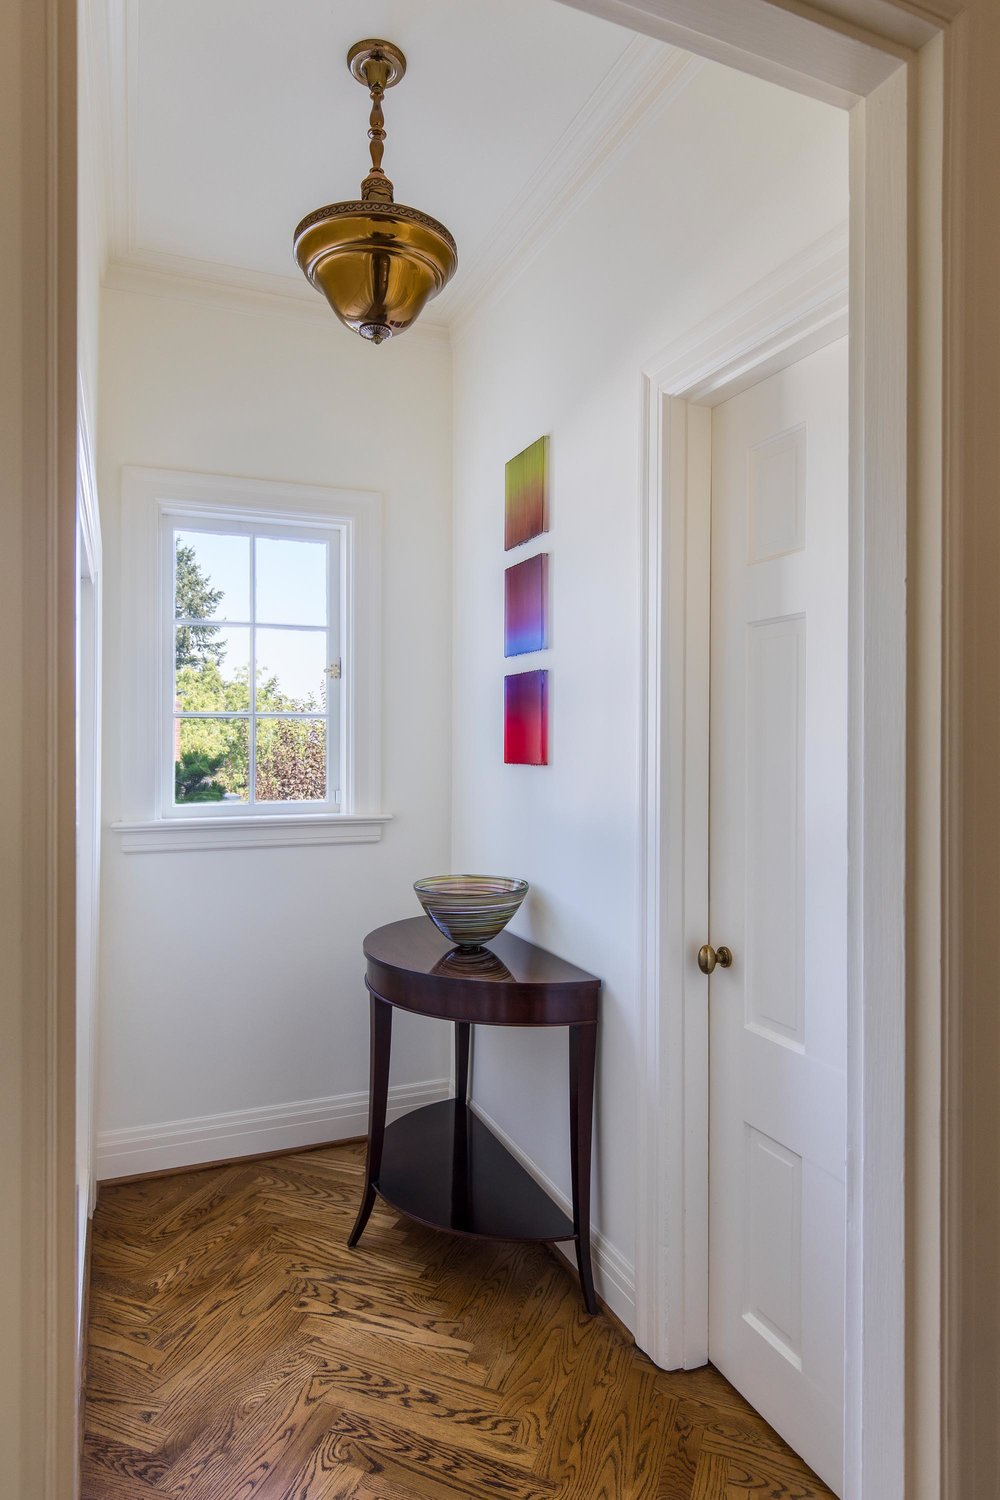 House interior with hallway and a side table